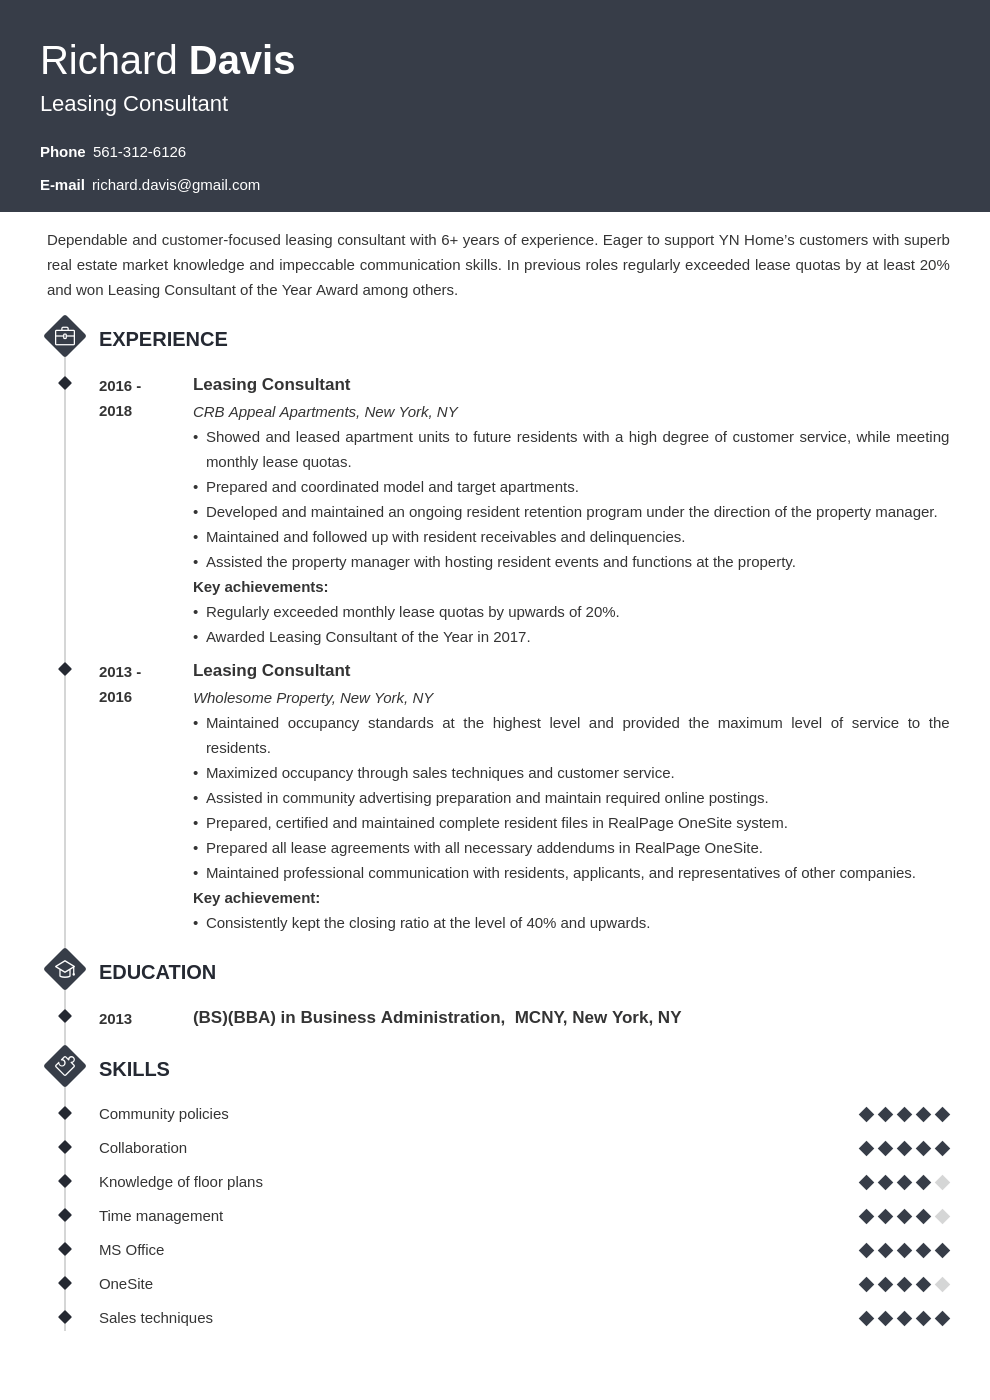 Leasing Consultant Resume Examples Guide Sample